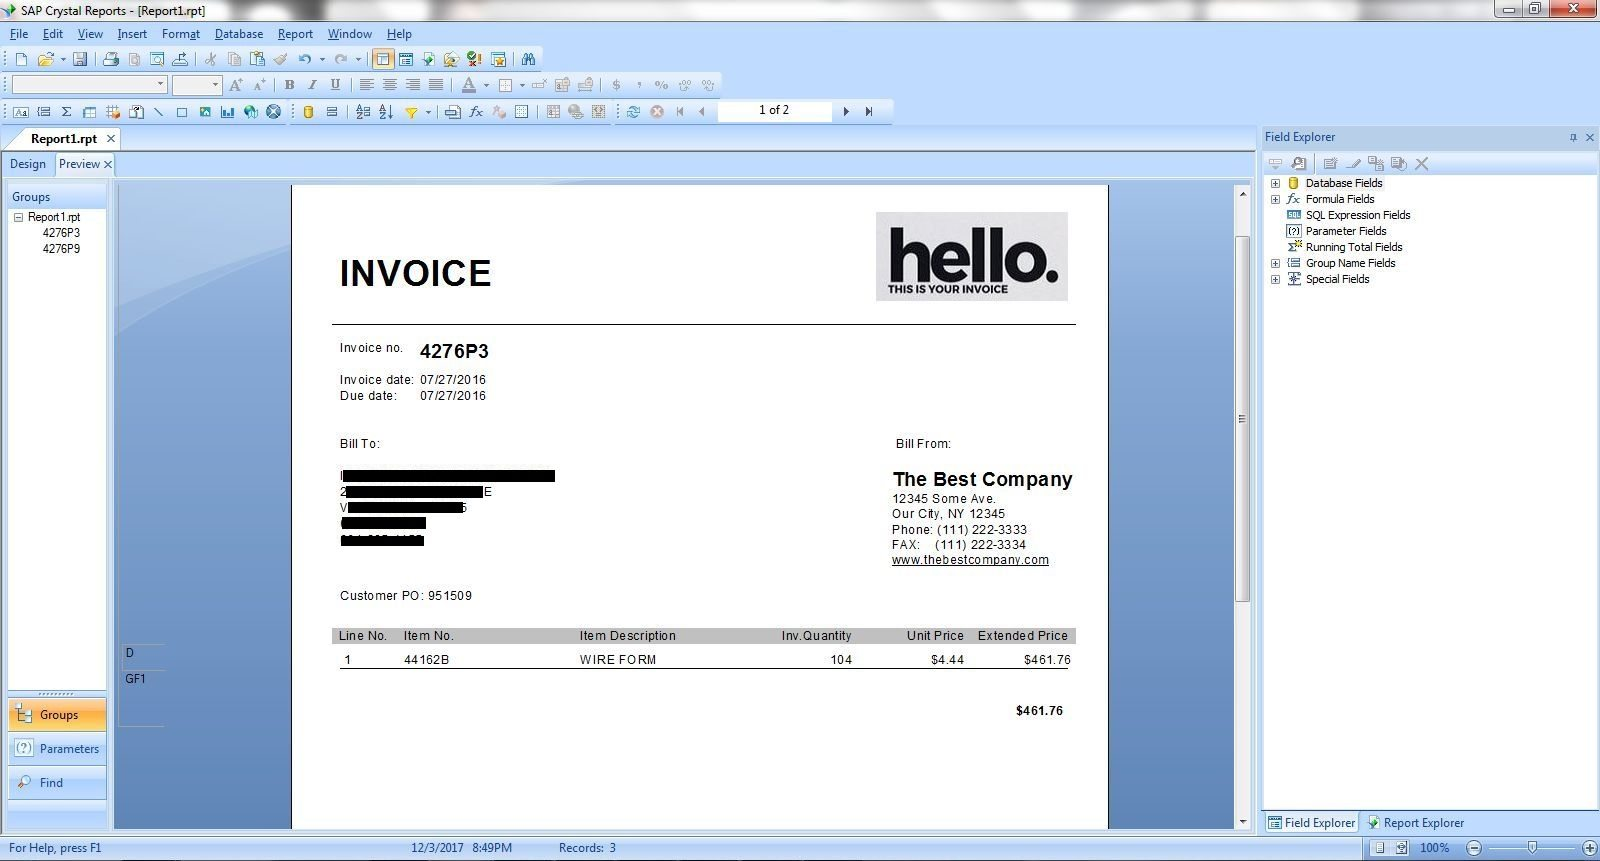 How to Create an Invoice Using SAP Crystal Reports